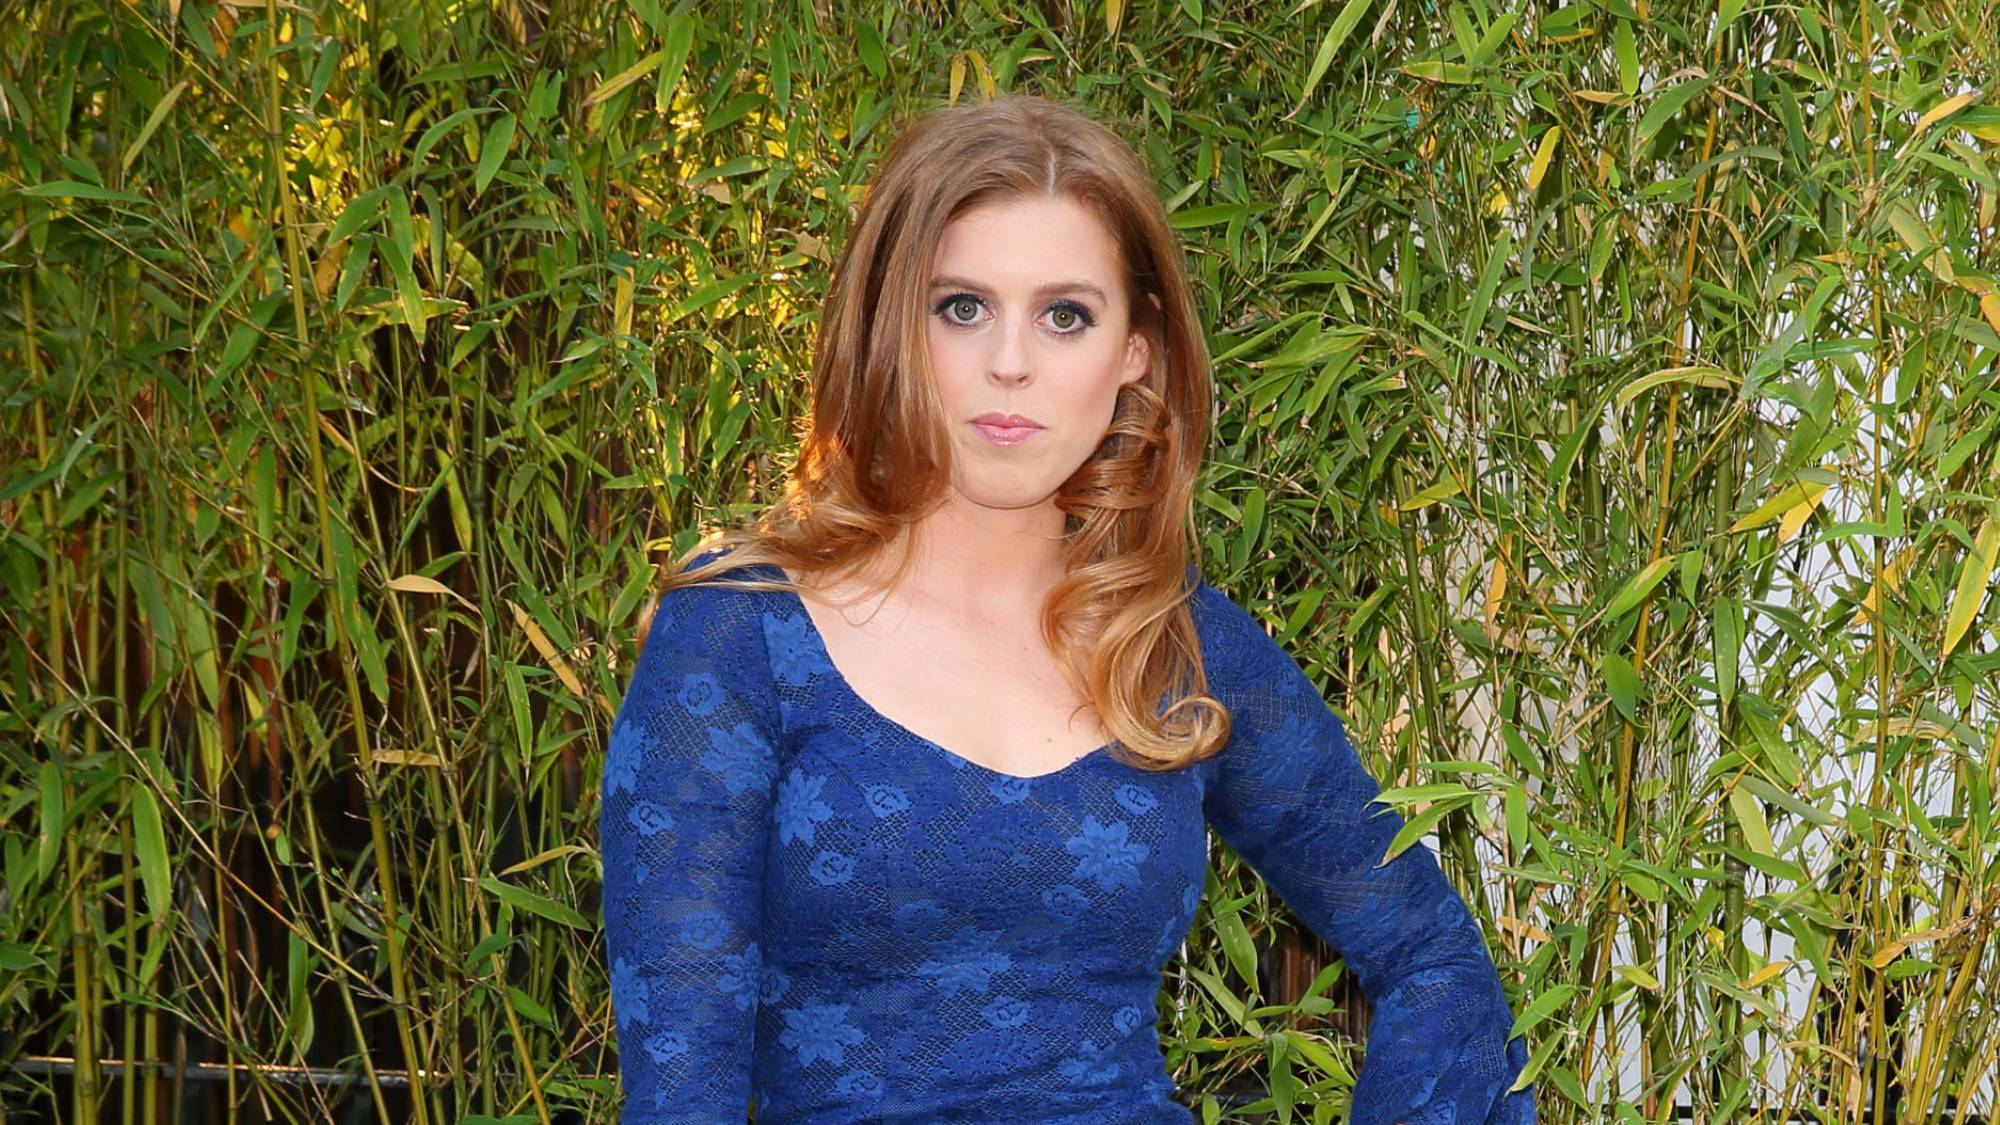 Princess Beatrice's wedding will not include the usual royal traditions